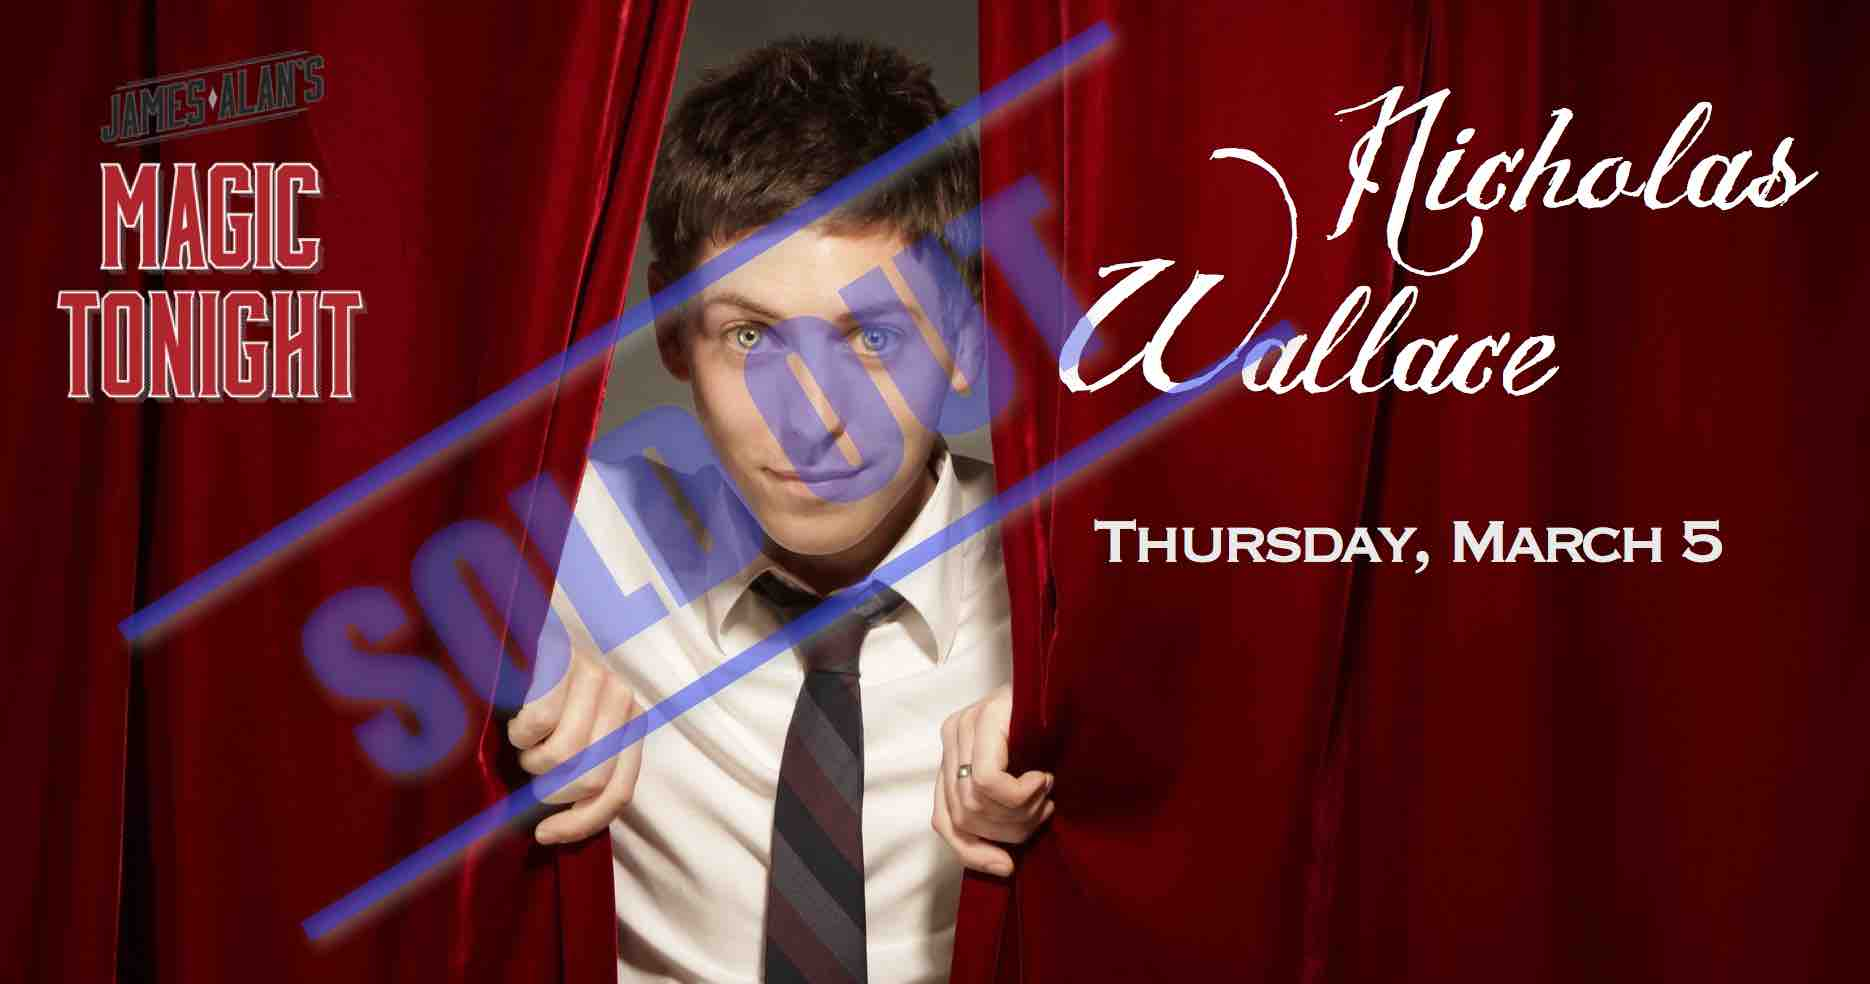 Mar 5 Wallace Sold out